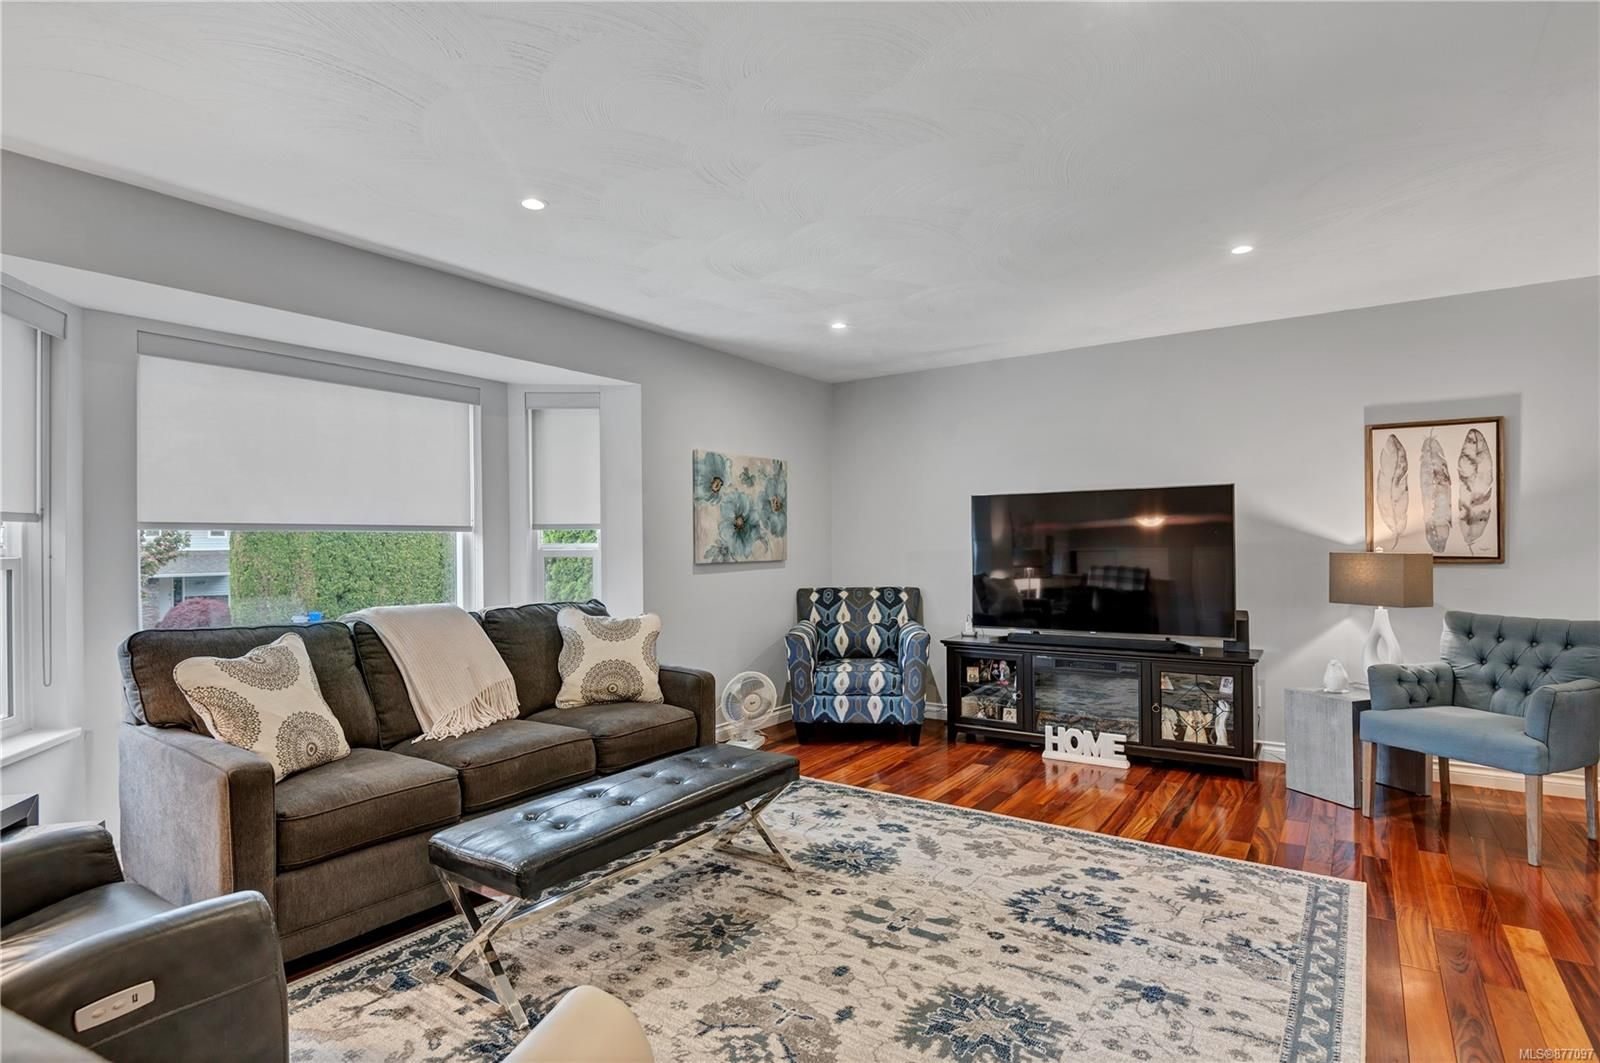 Photo 4: Photos: 2876 Fairmile Rd in : CR Willow Point House for sale (Campbell River)  : MLS®# 877097